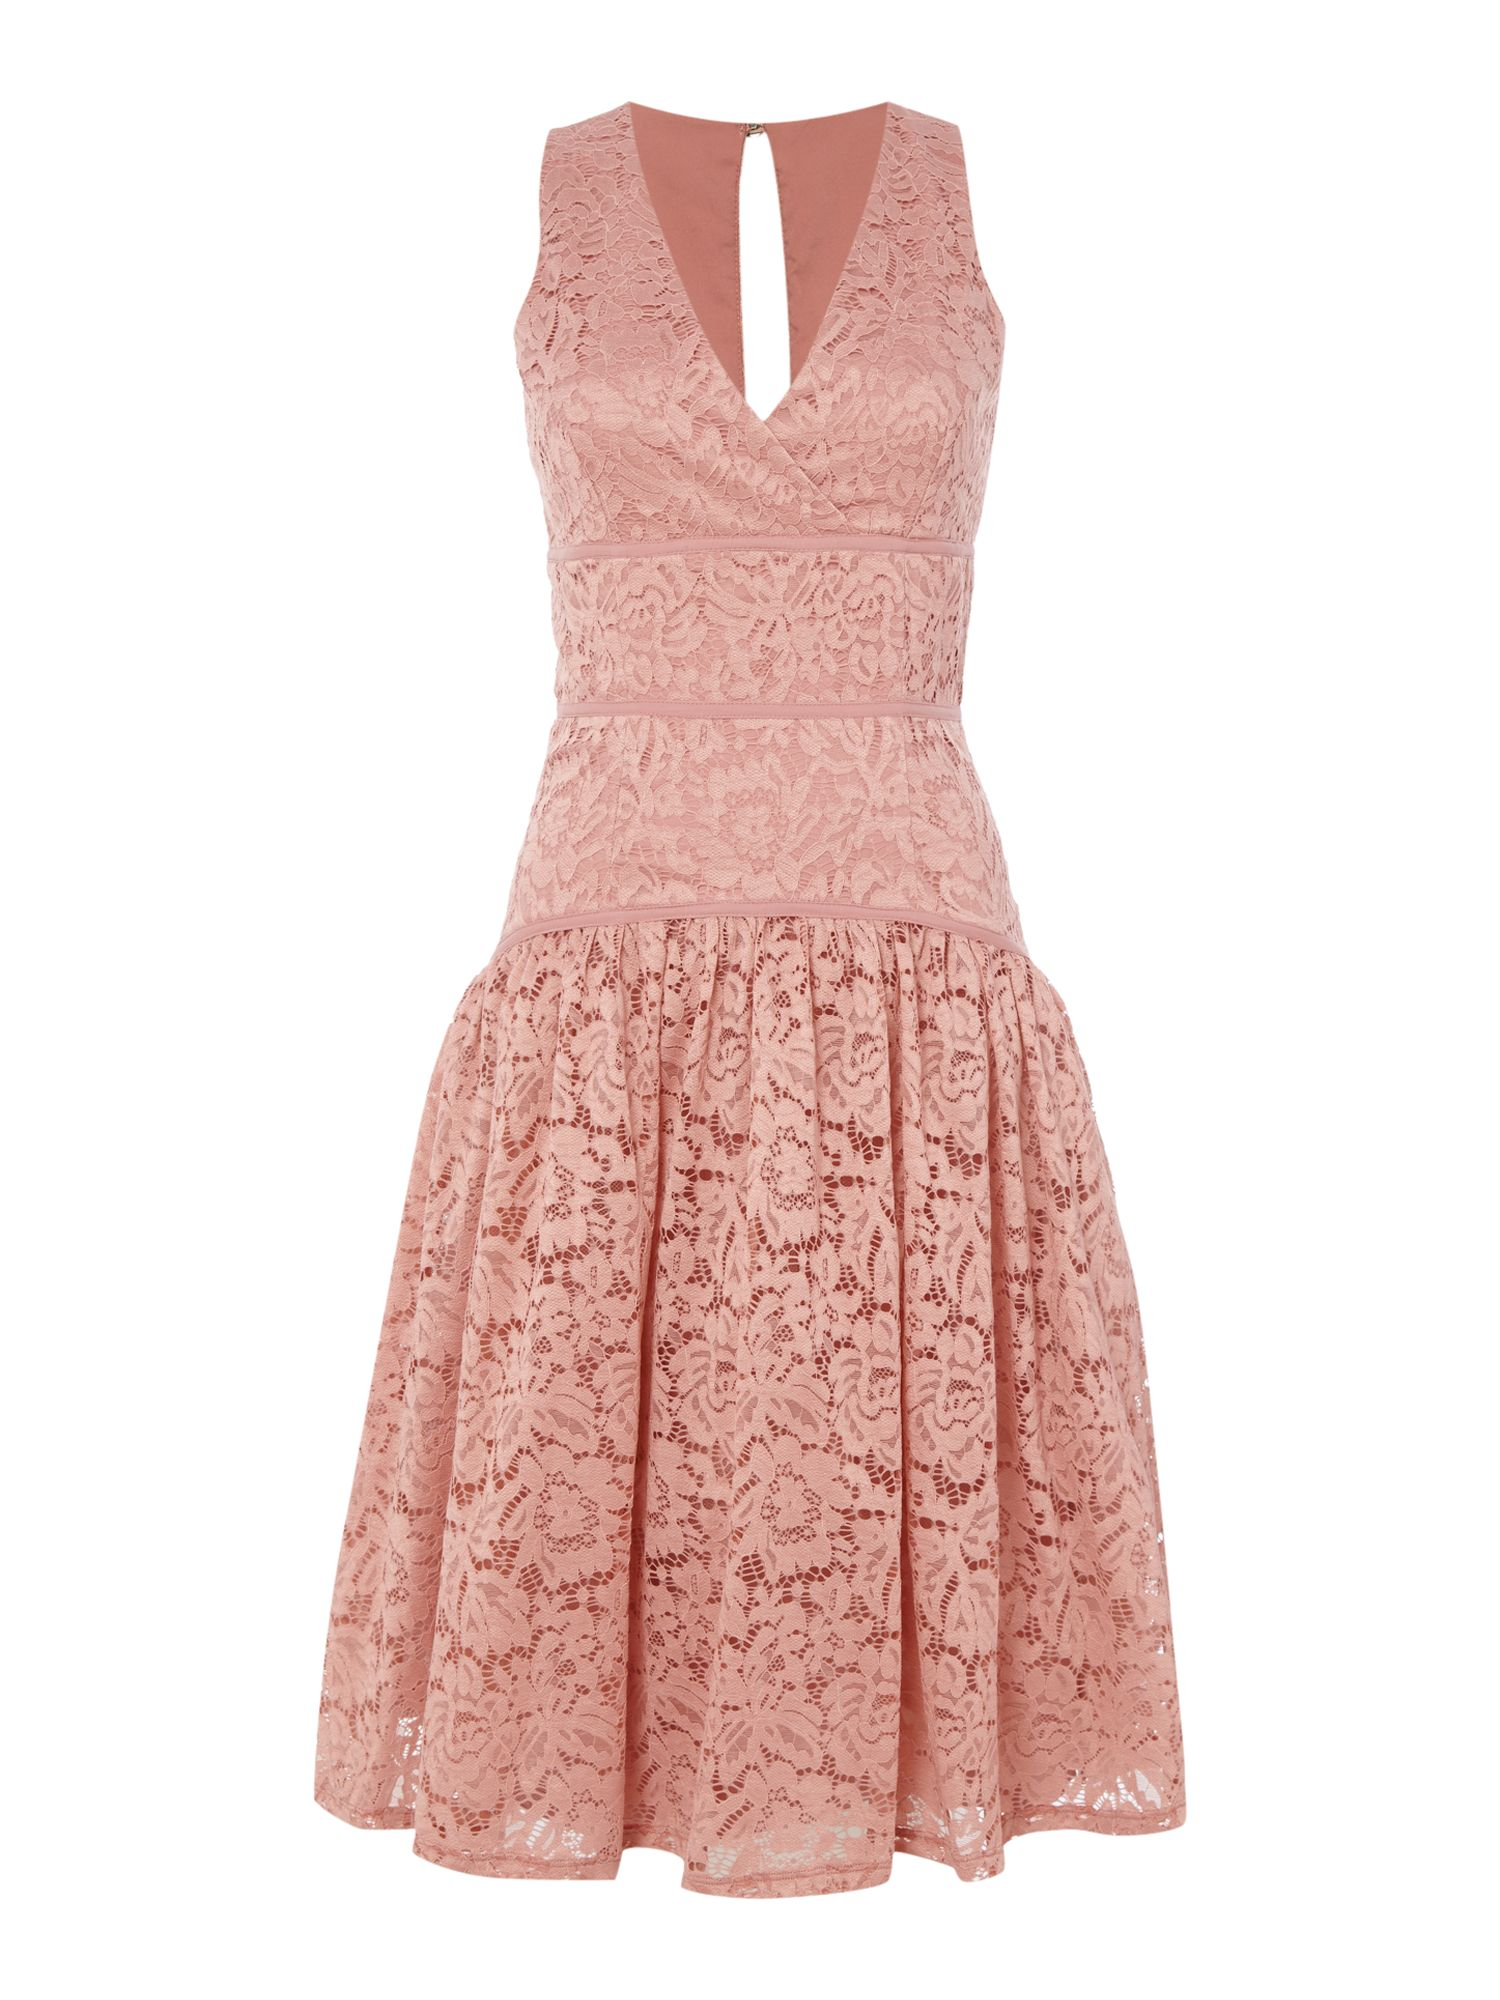 Little Mistress Sleeveless Lace Dropped Hem Dress, Apricot